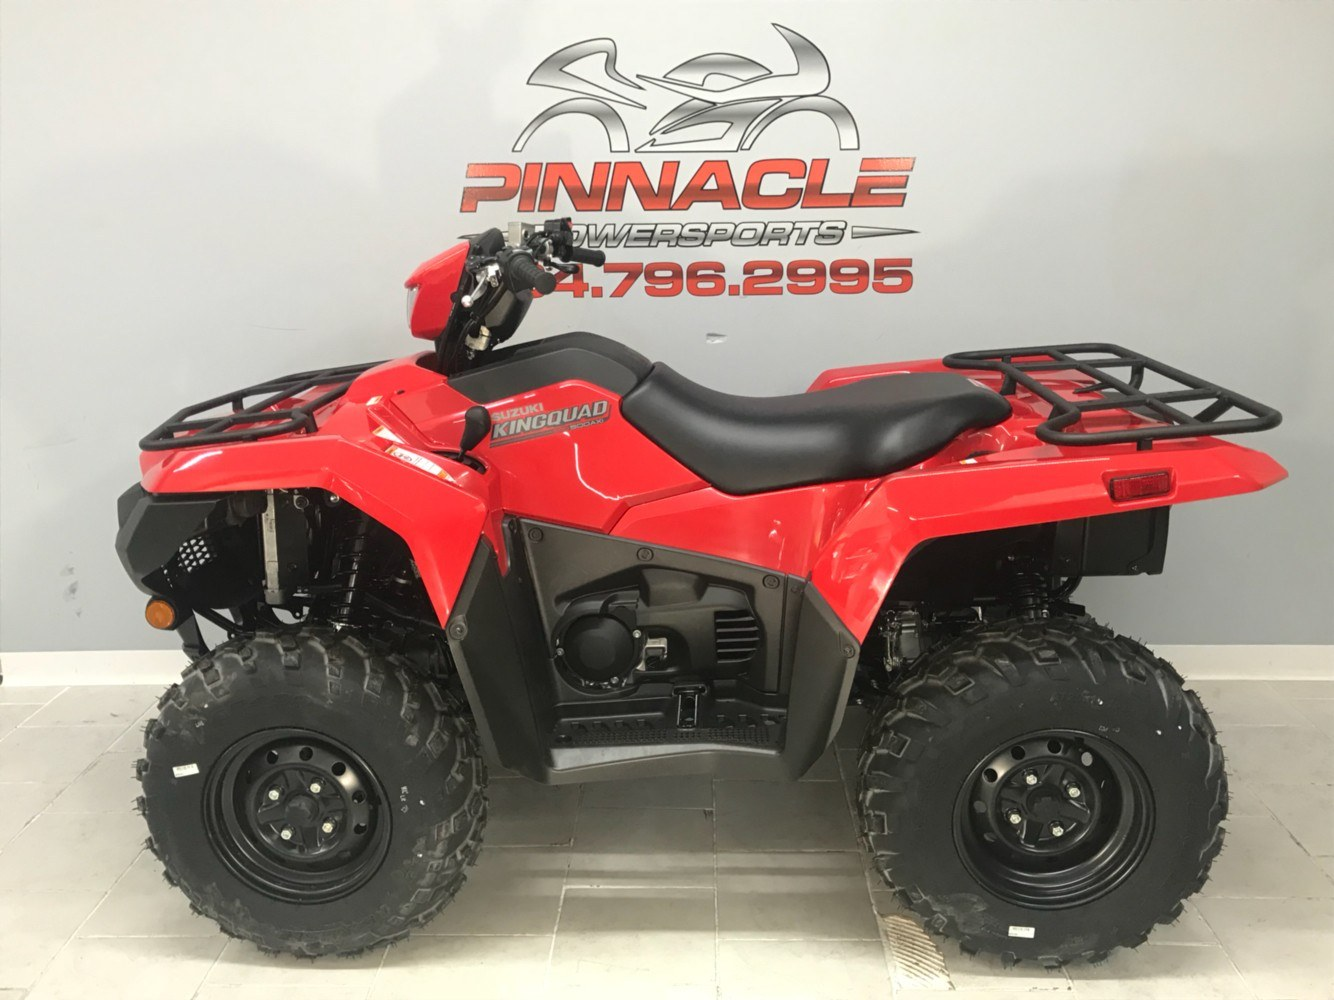 2019 Suzuki KingQuad 750AXi in Belleville, Michigan - Photo 6